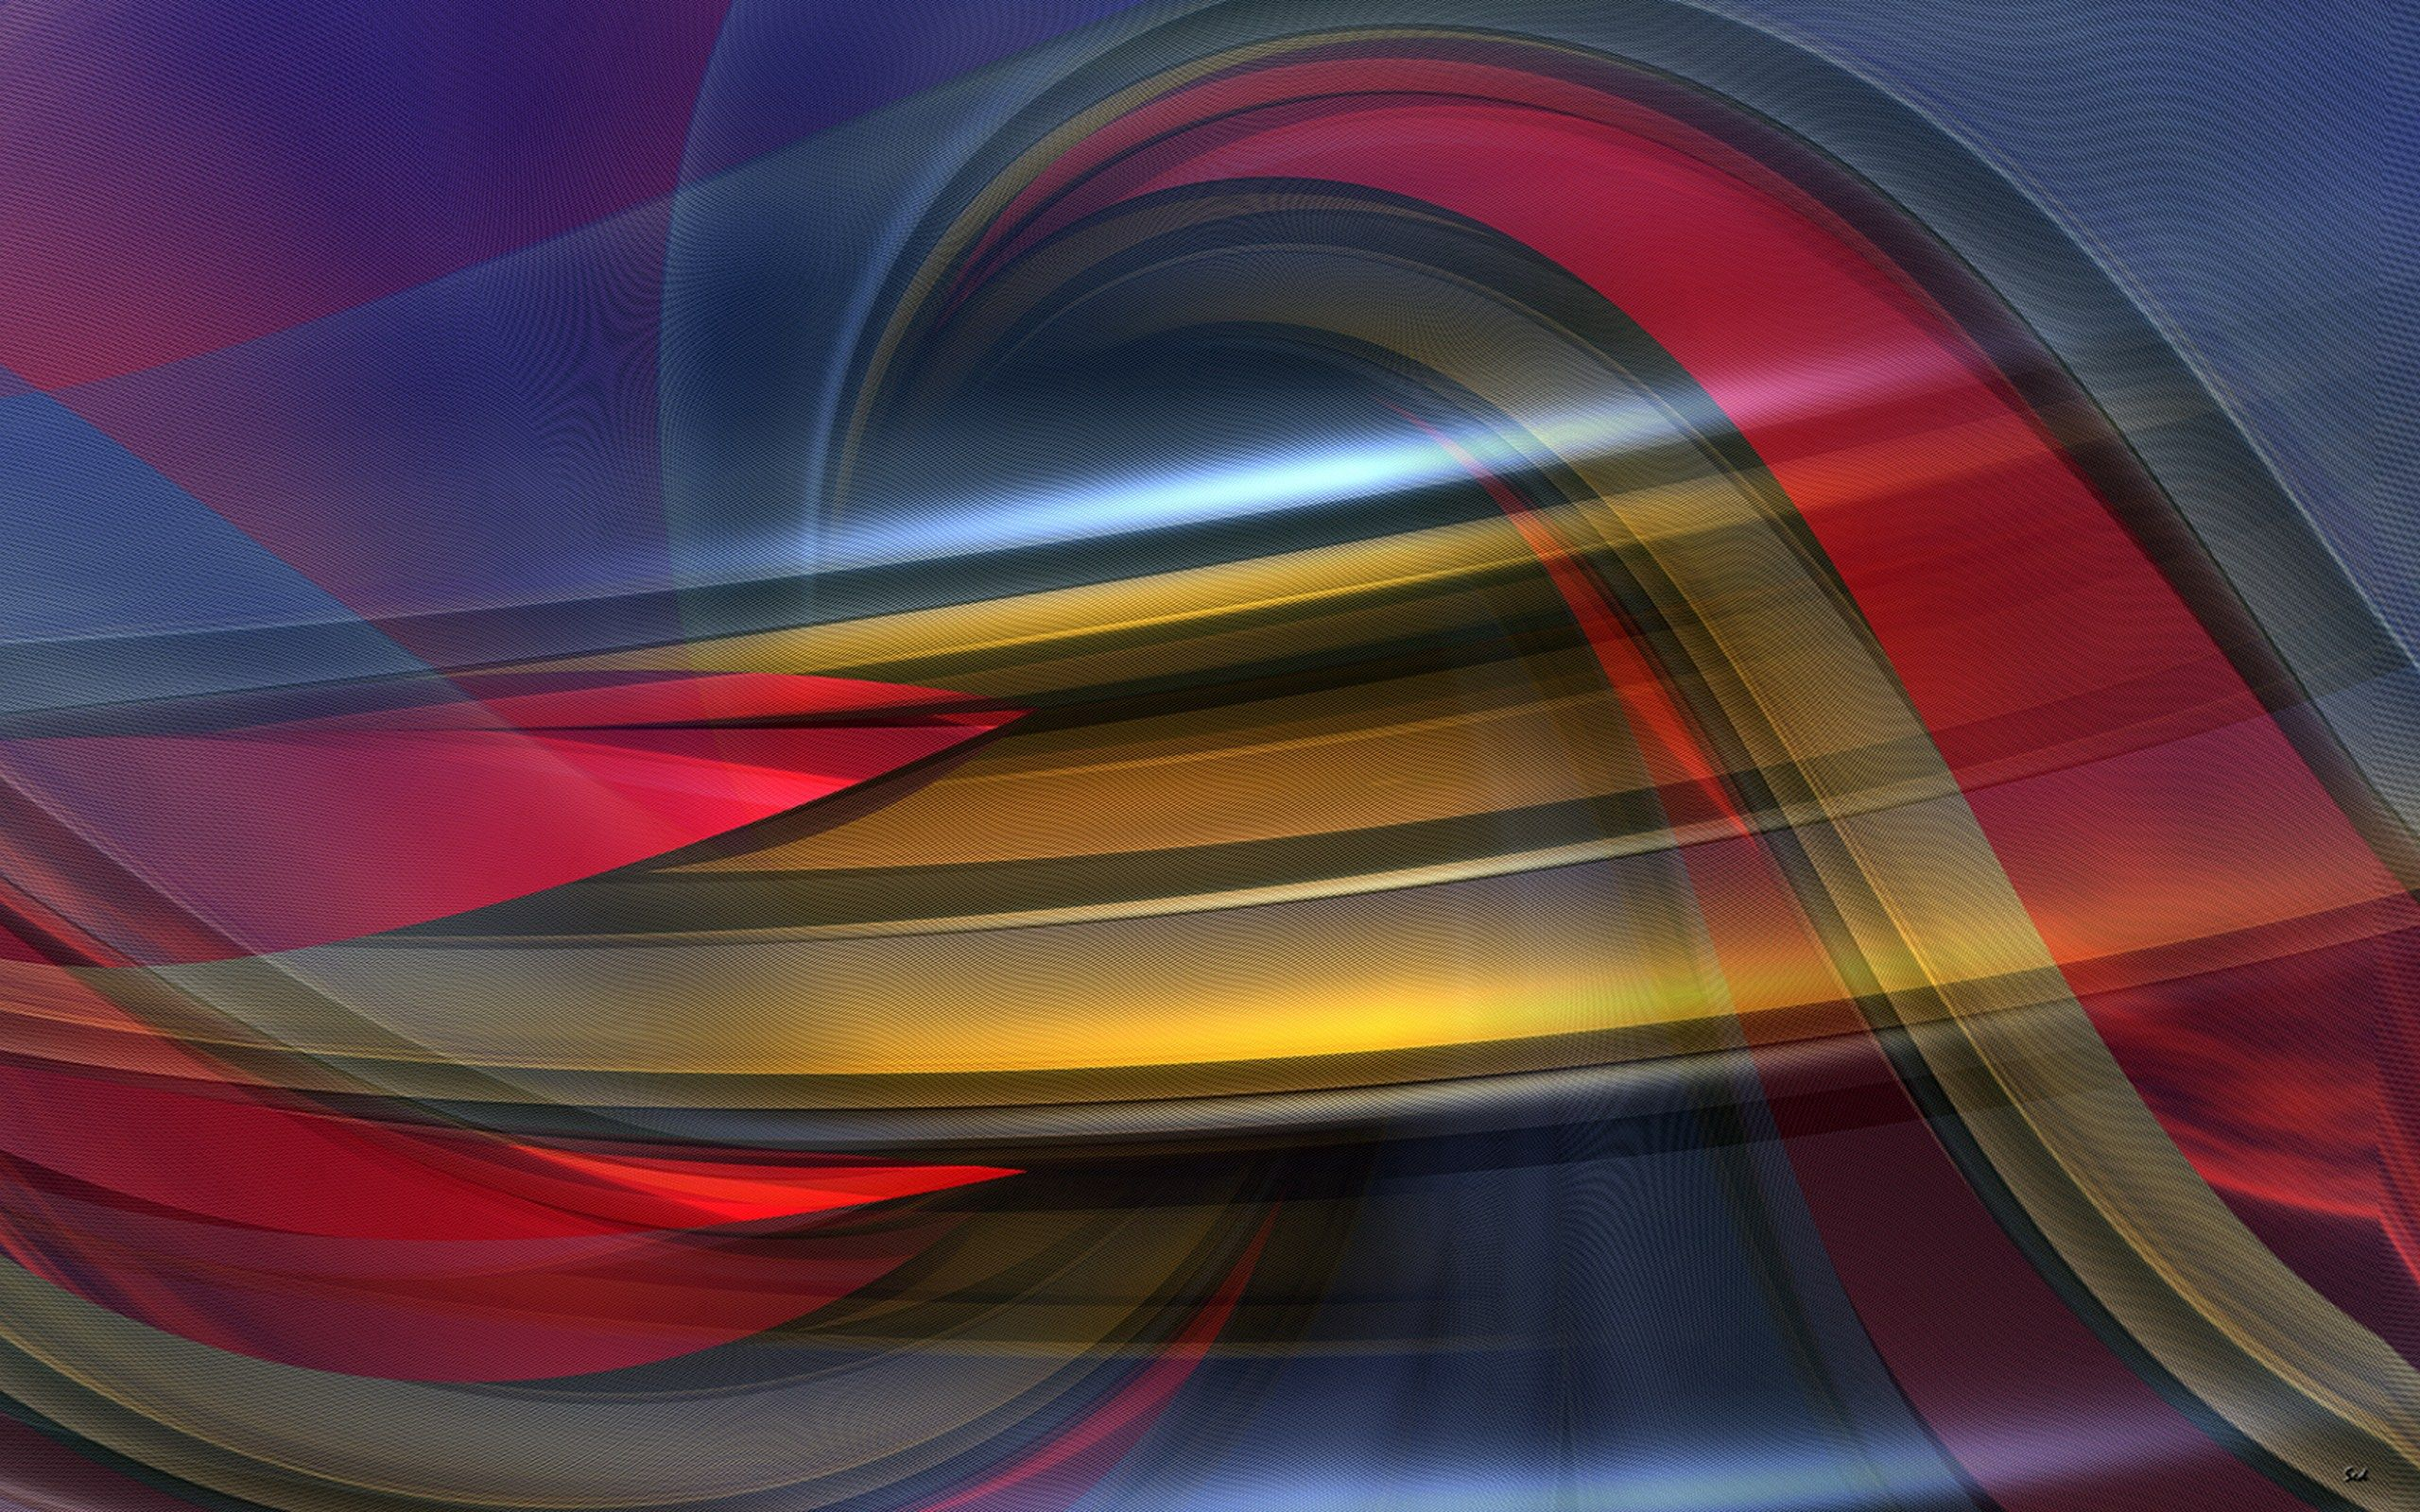 77093 download wallpaper Abstract, Abstraction, Shine, Light, Lines, Stripes, Streaks screensavers and pictures for free